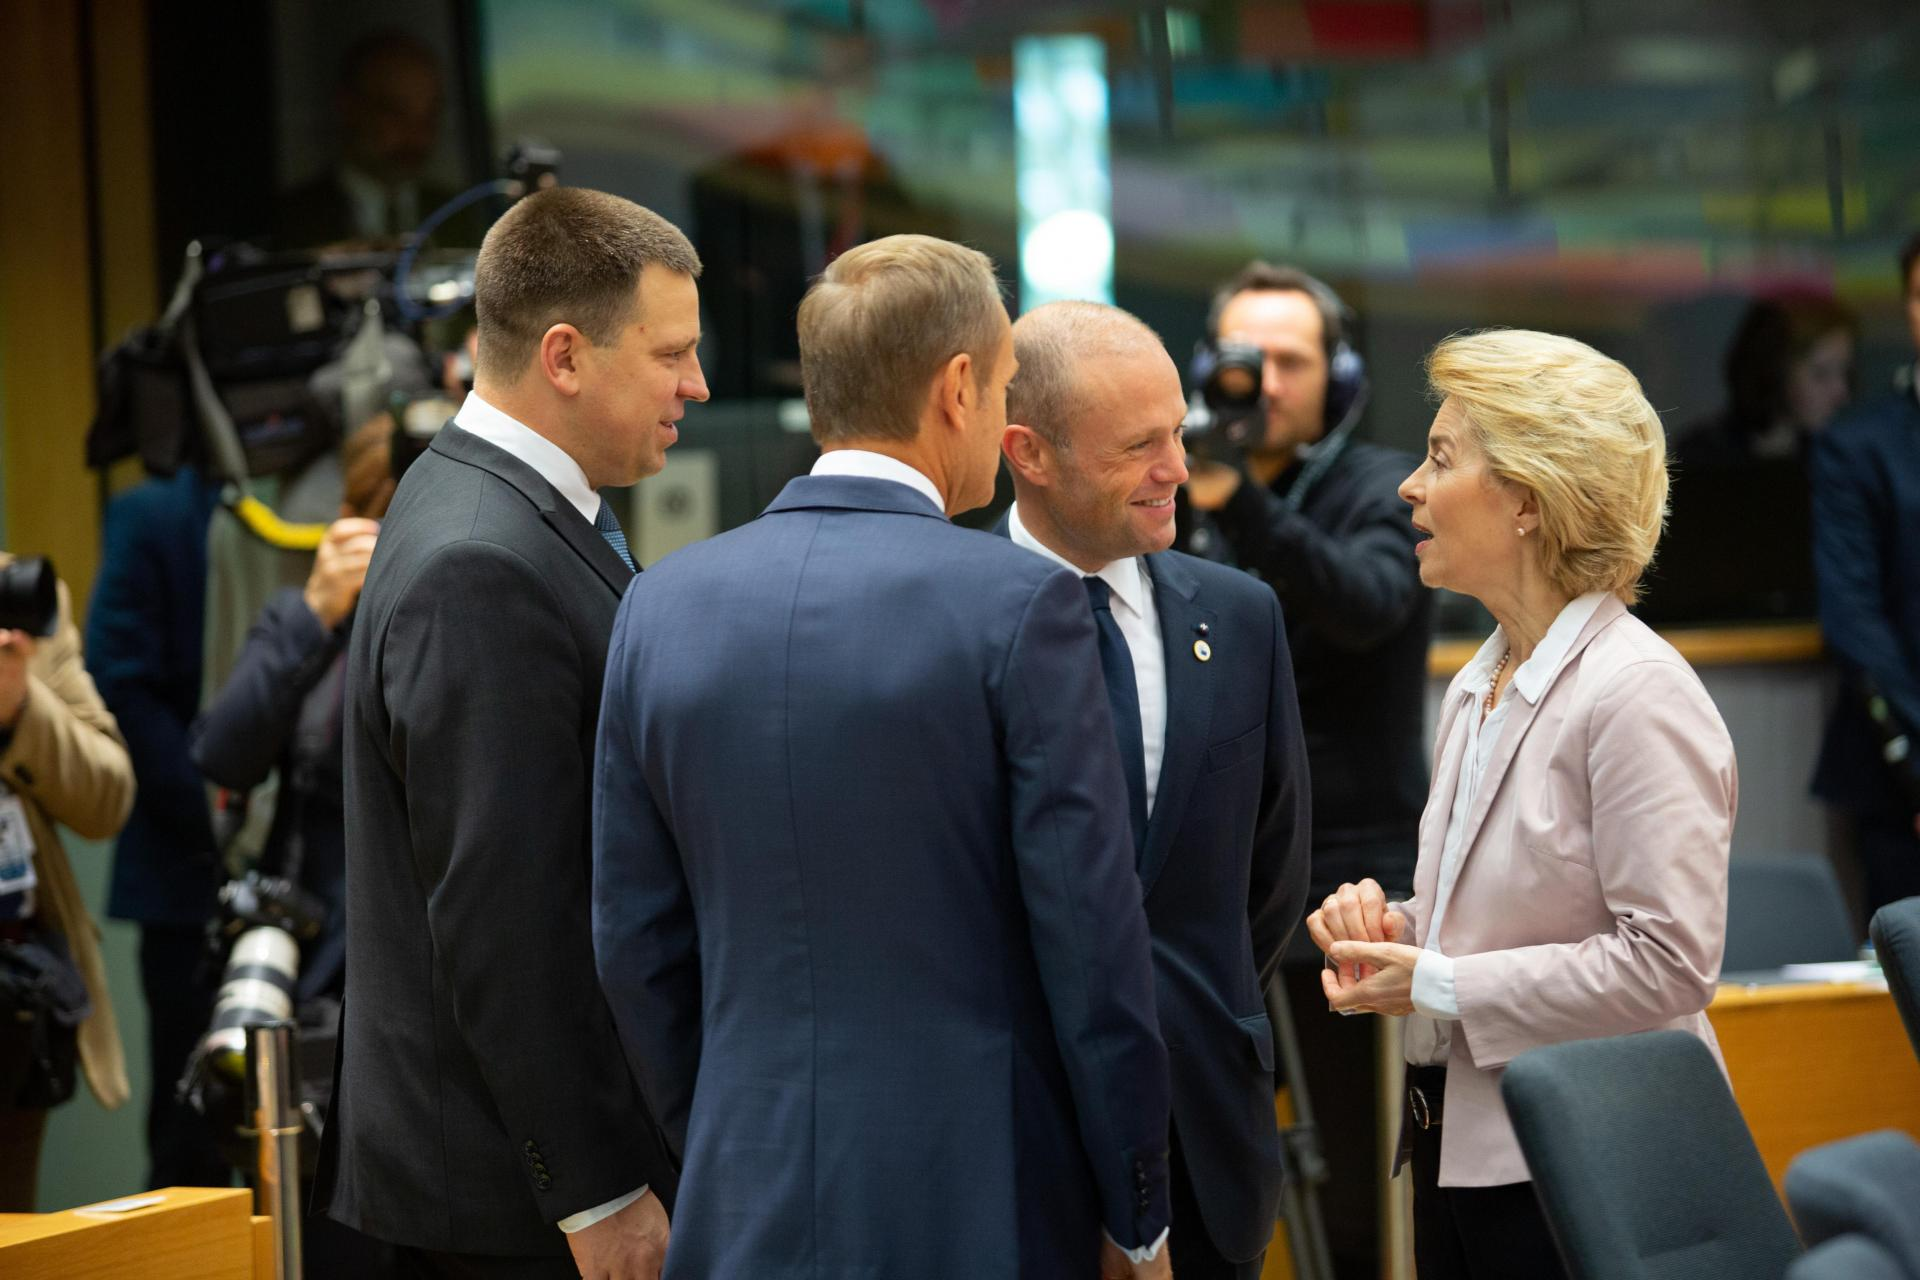 European Commission president Ursula von der Leyen talks with now-former EU Council president Donald Tusk, Joseph Muscat and Estonian Prime Minister Juri Ratas. Photo: AFP